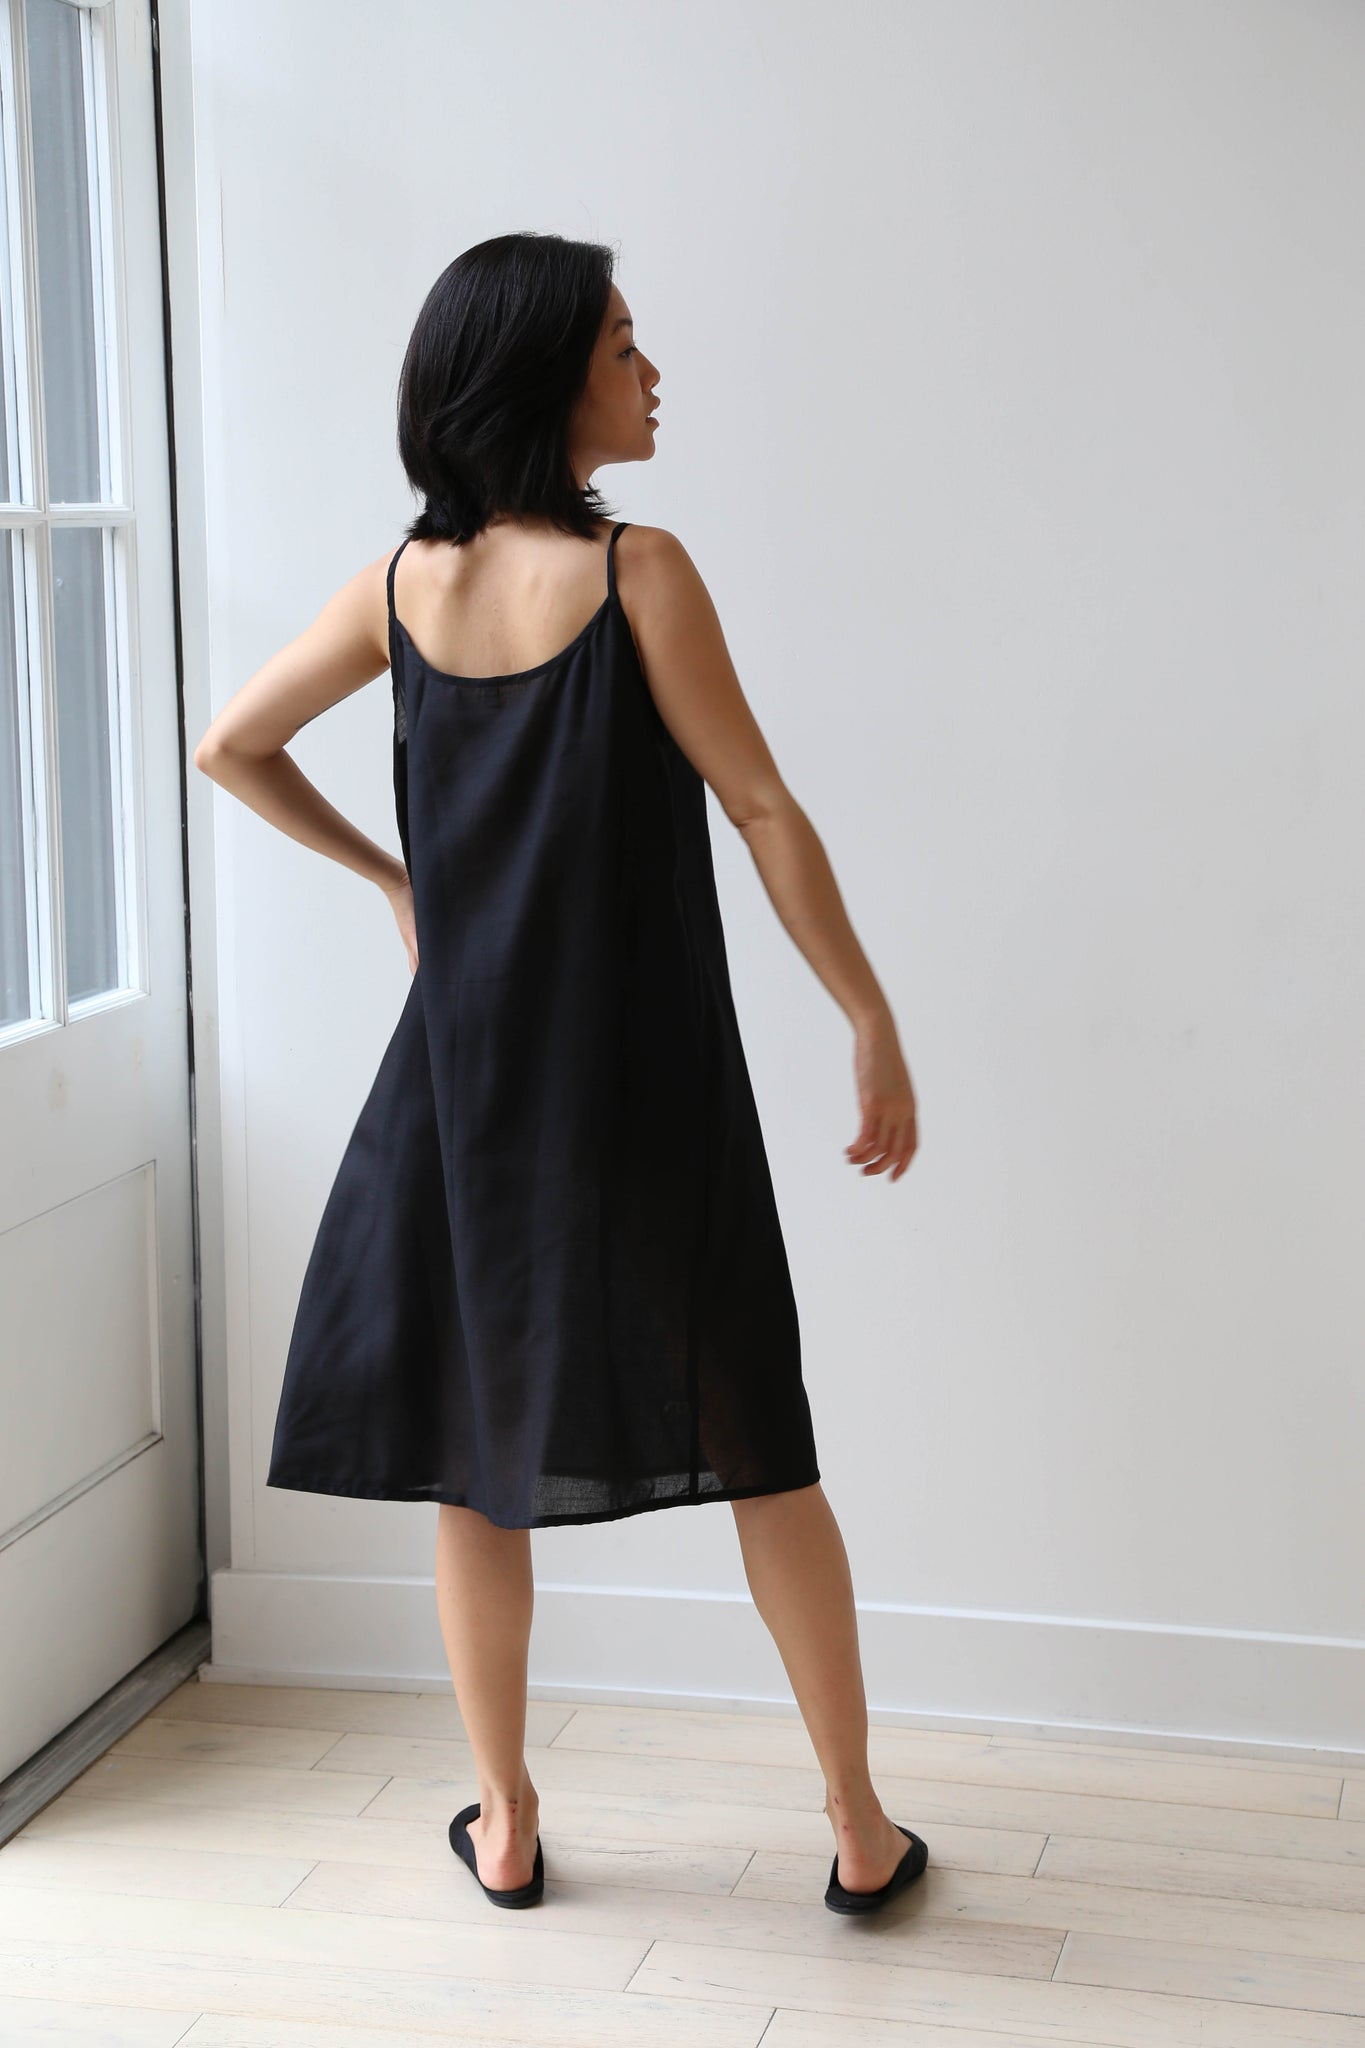 Veritecoeur Black Gather Dress